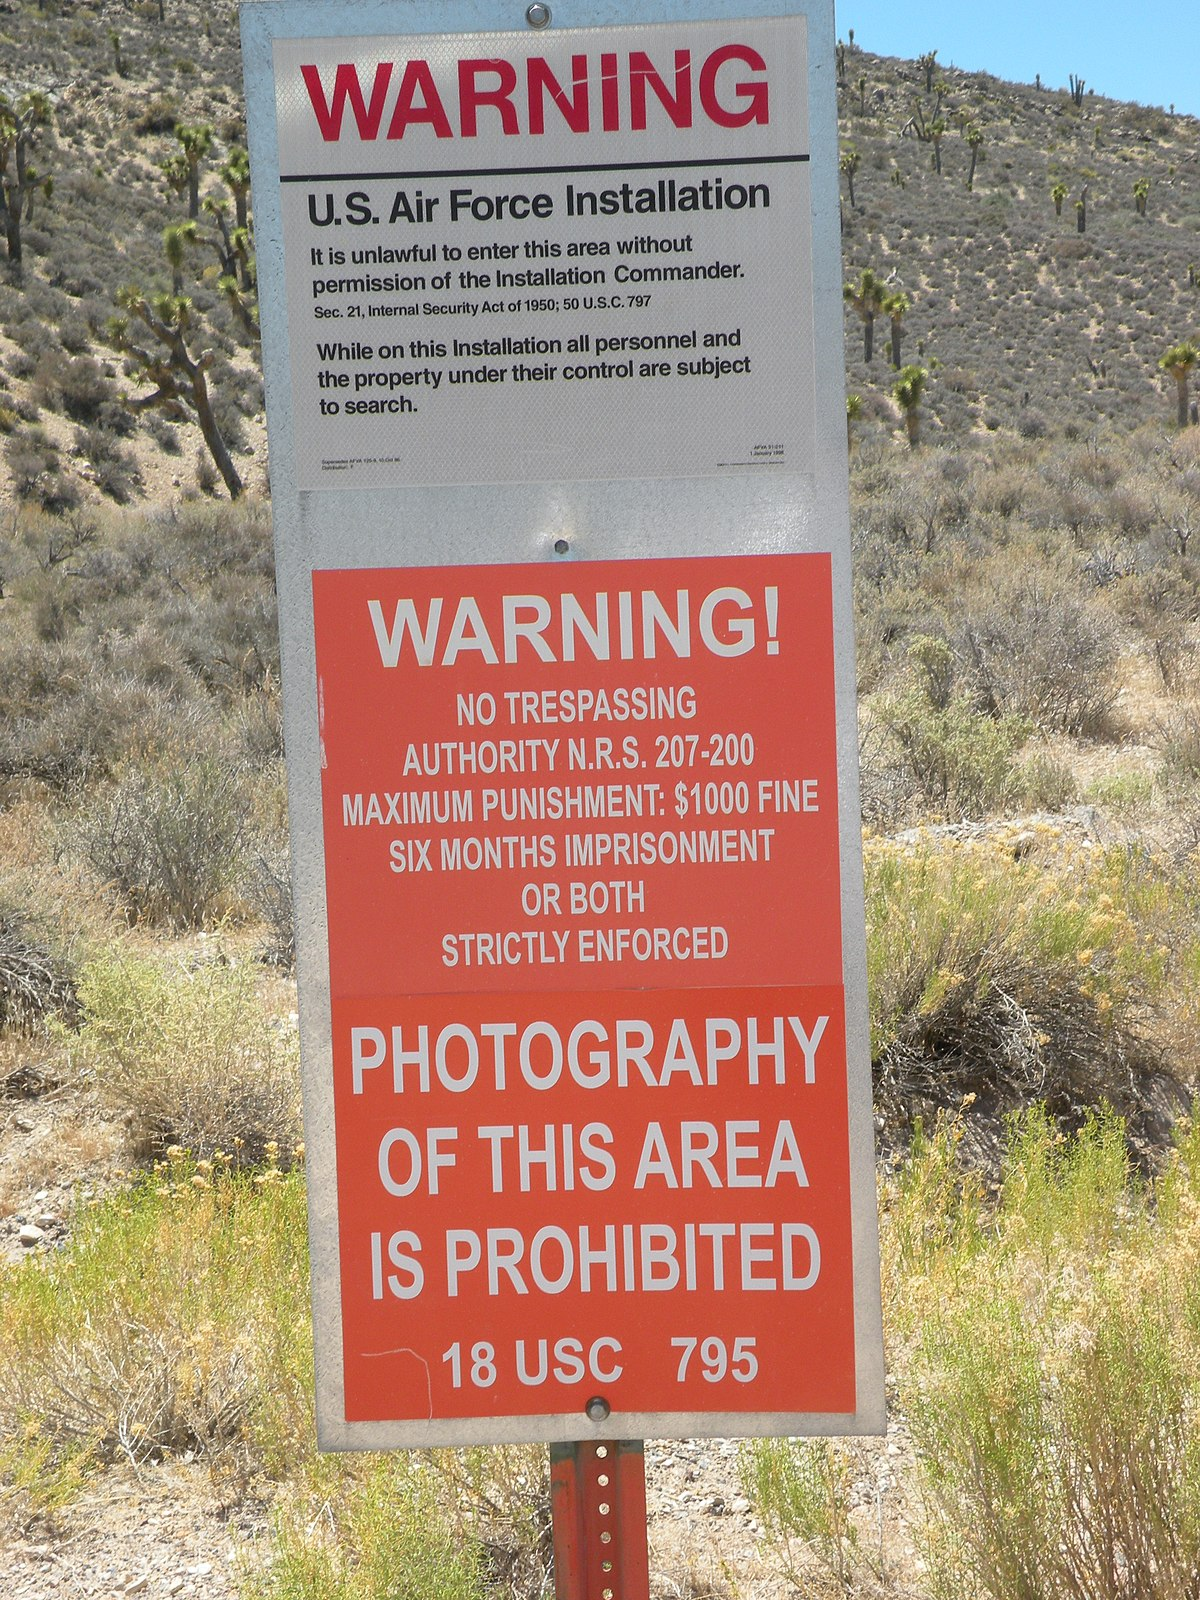 Hundreds 'storm Area 51' in Nevada desert - Wikinews, the free news source